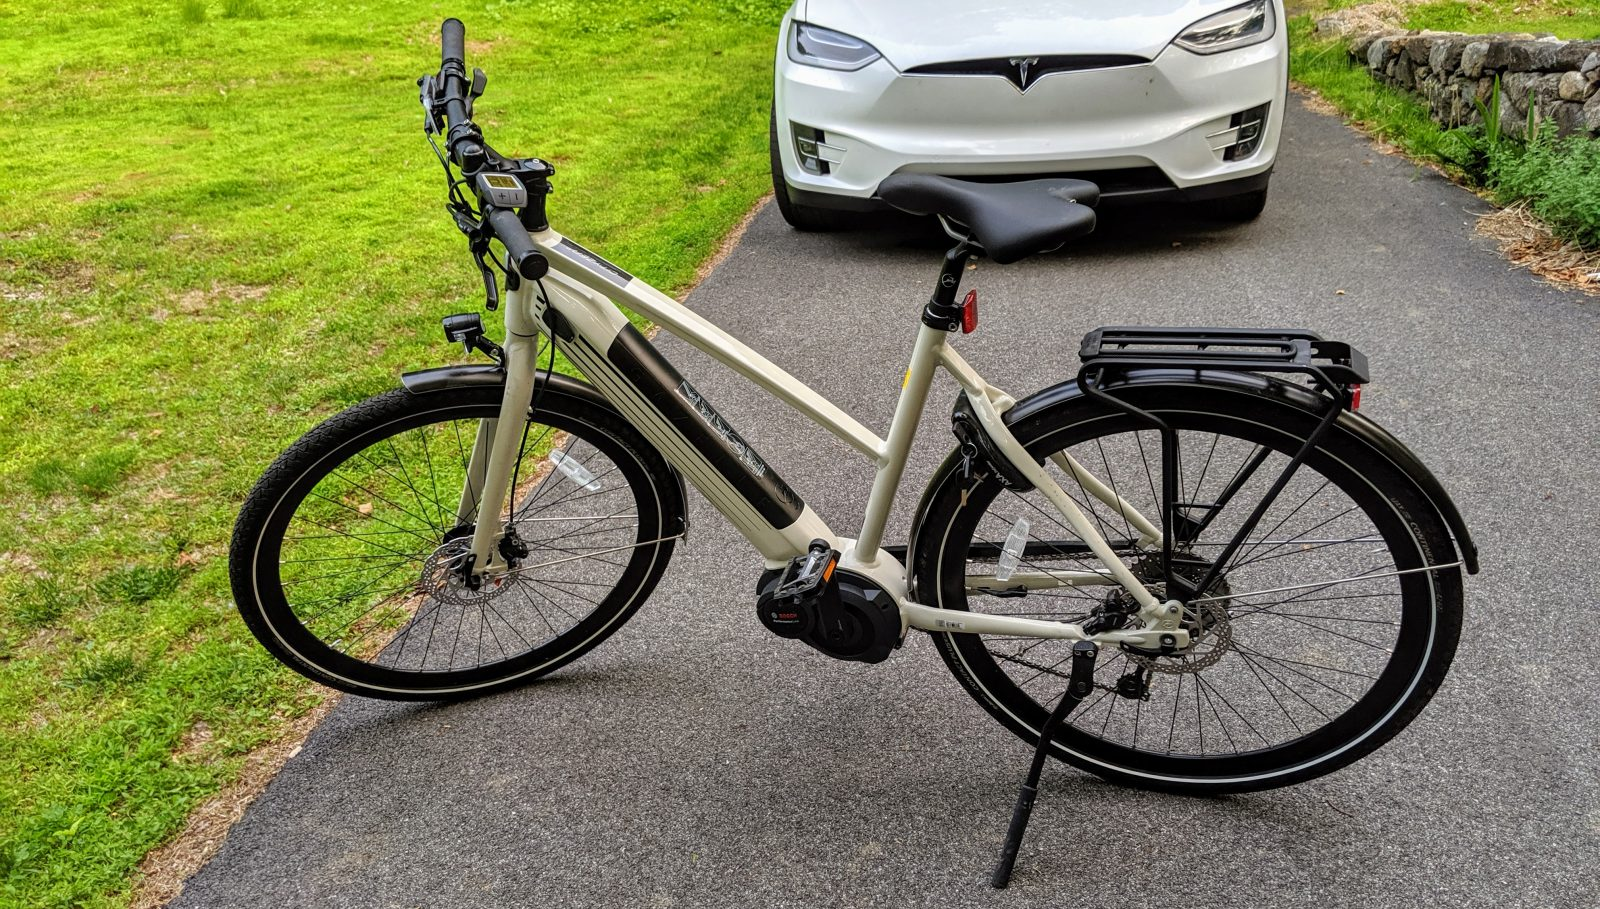 Review: Gazelle CityZen T9 – I just found the perfect bike for my wife